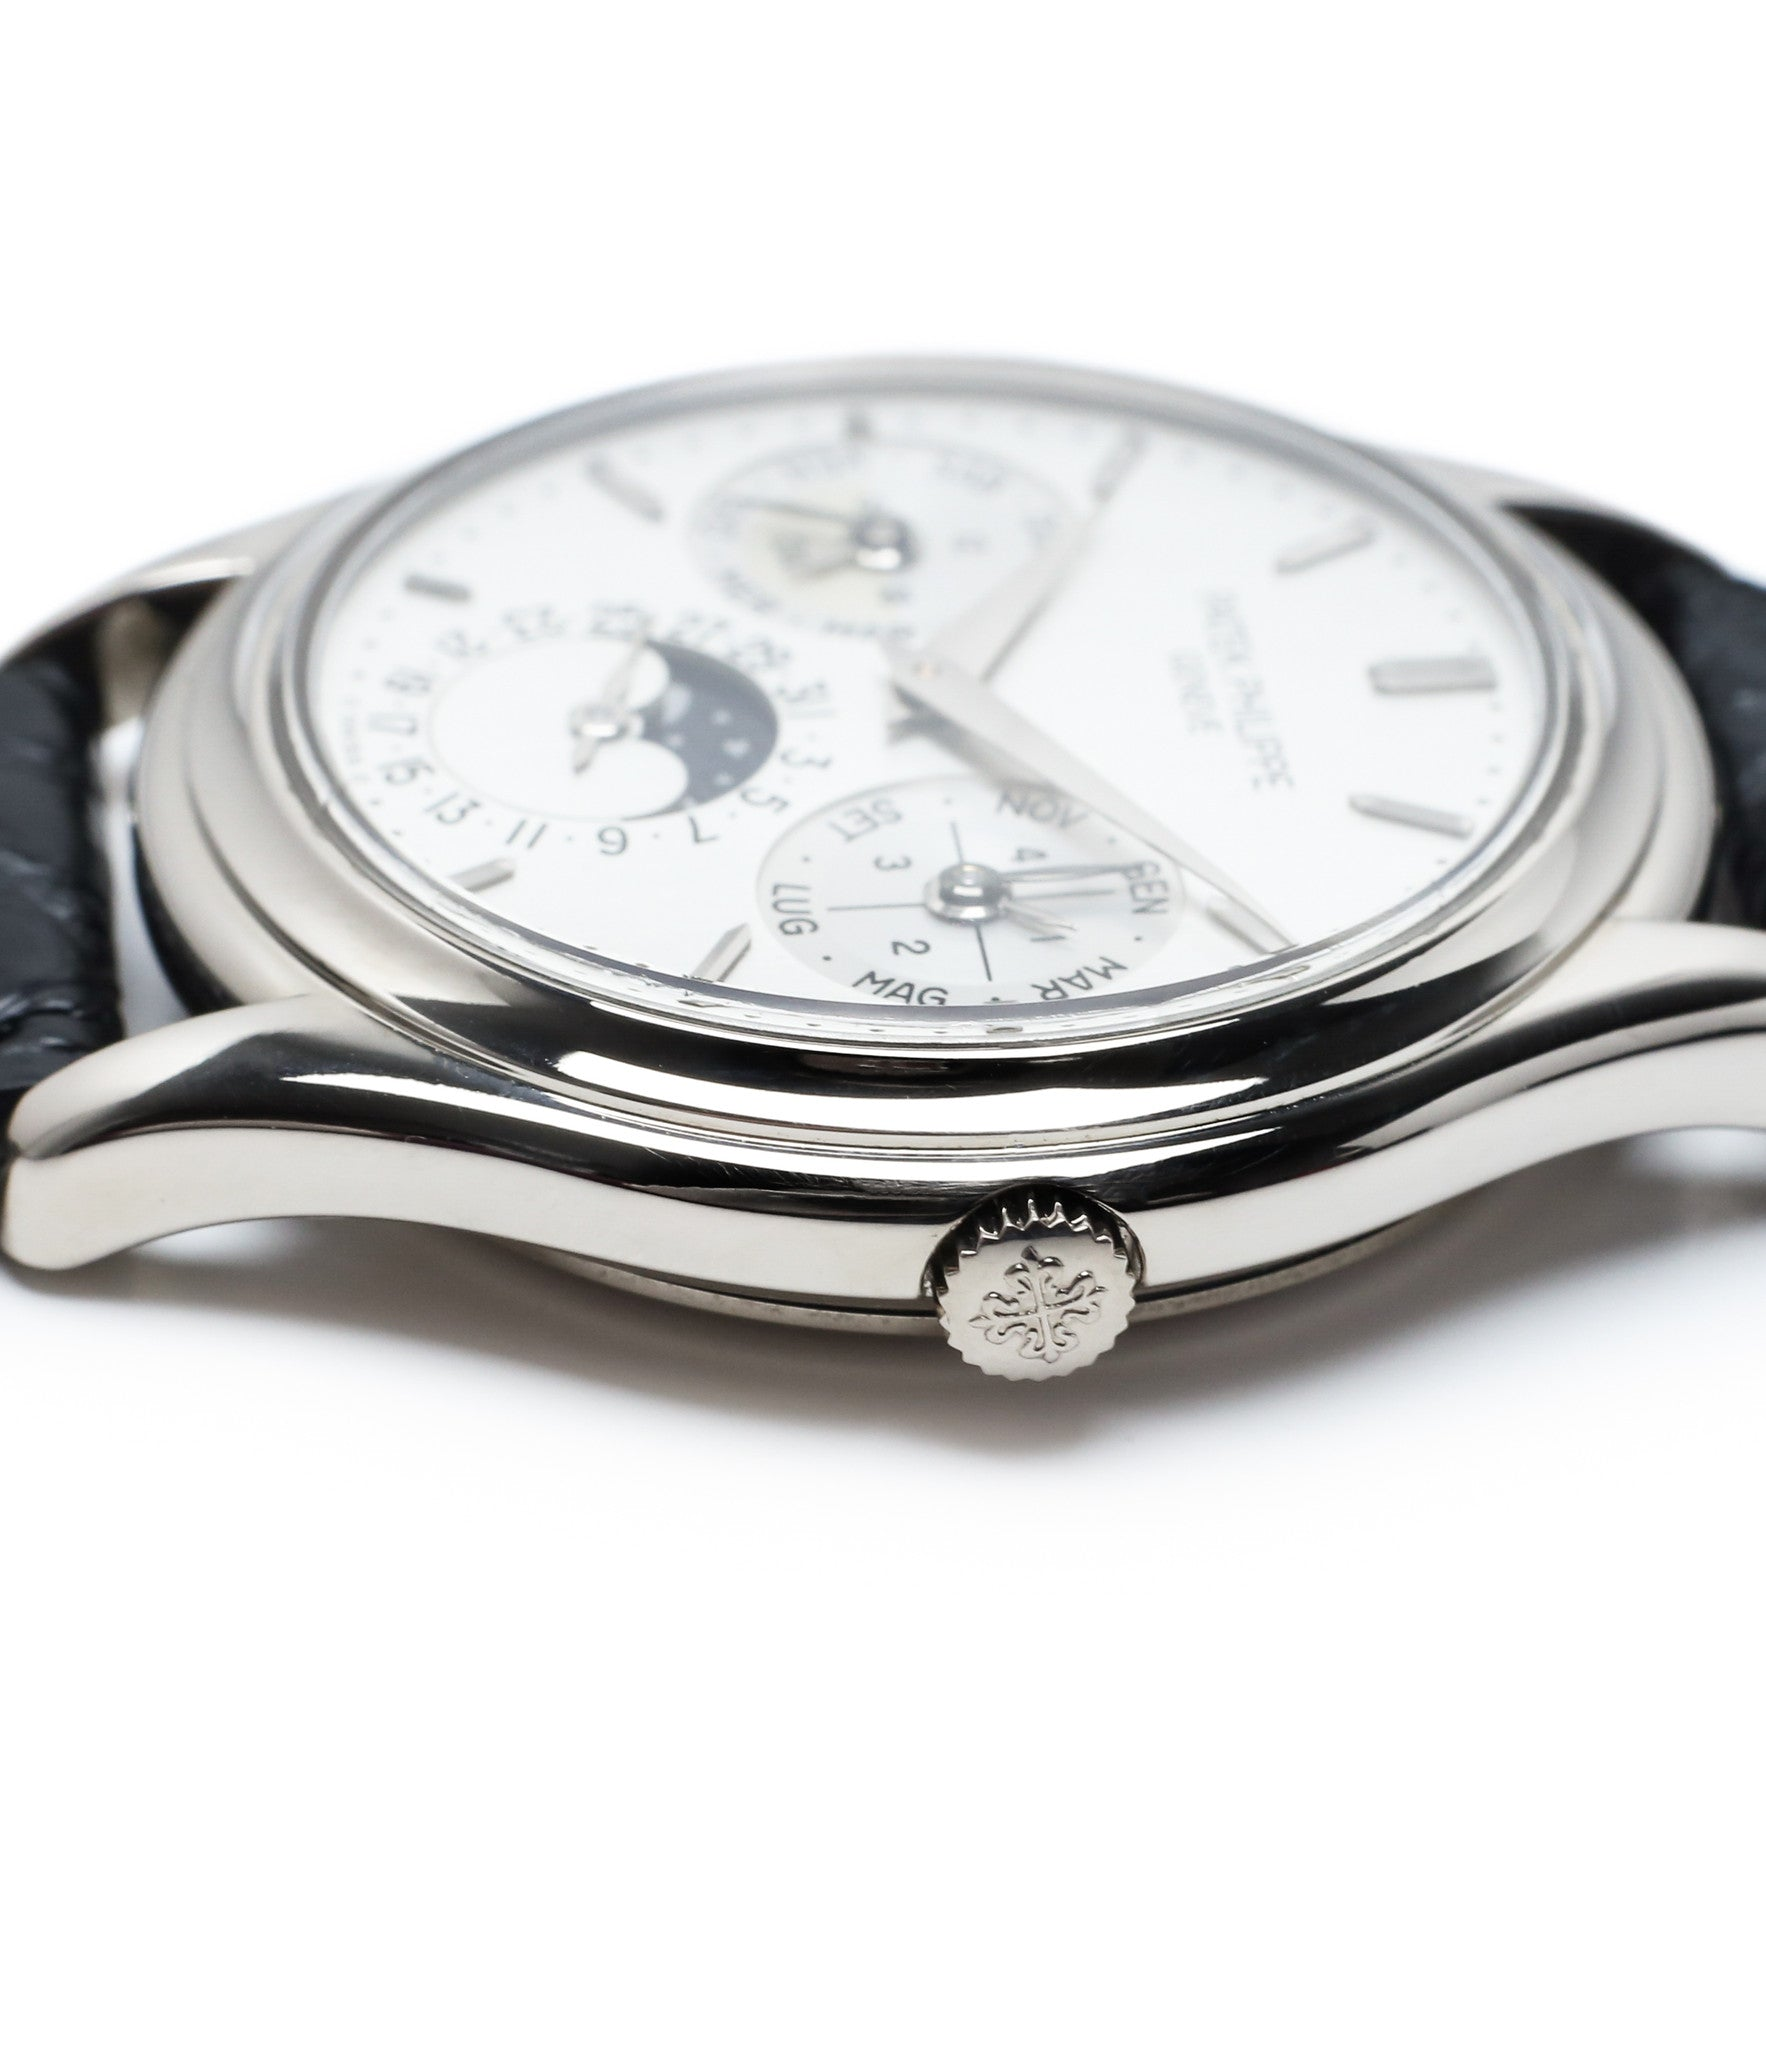 crown slim case buy rare Patek Philippe Perpetual Calendar 3940G moonphase white gold watch full set at A Collected Man